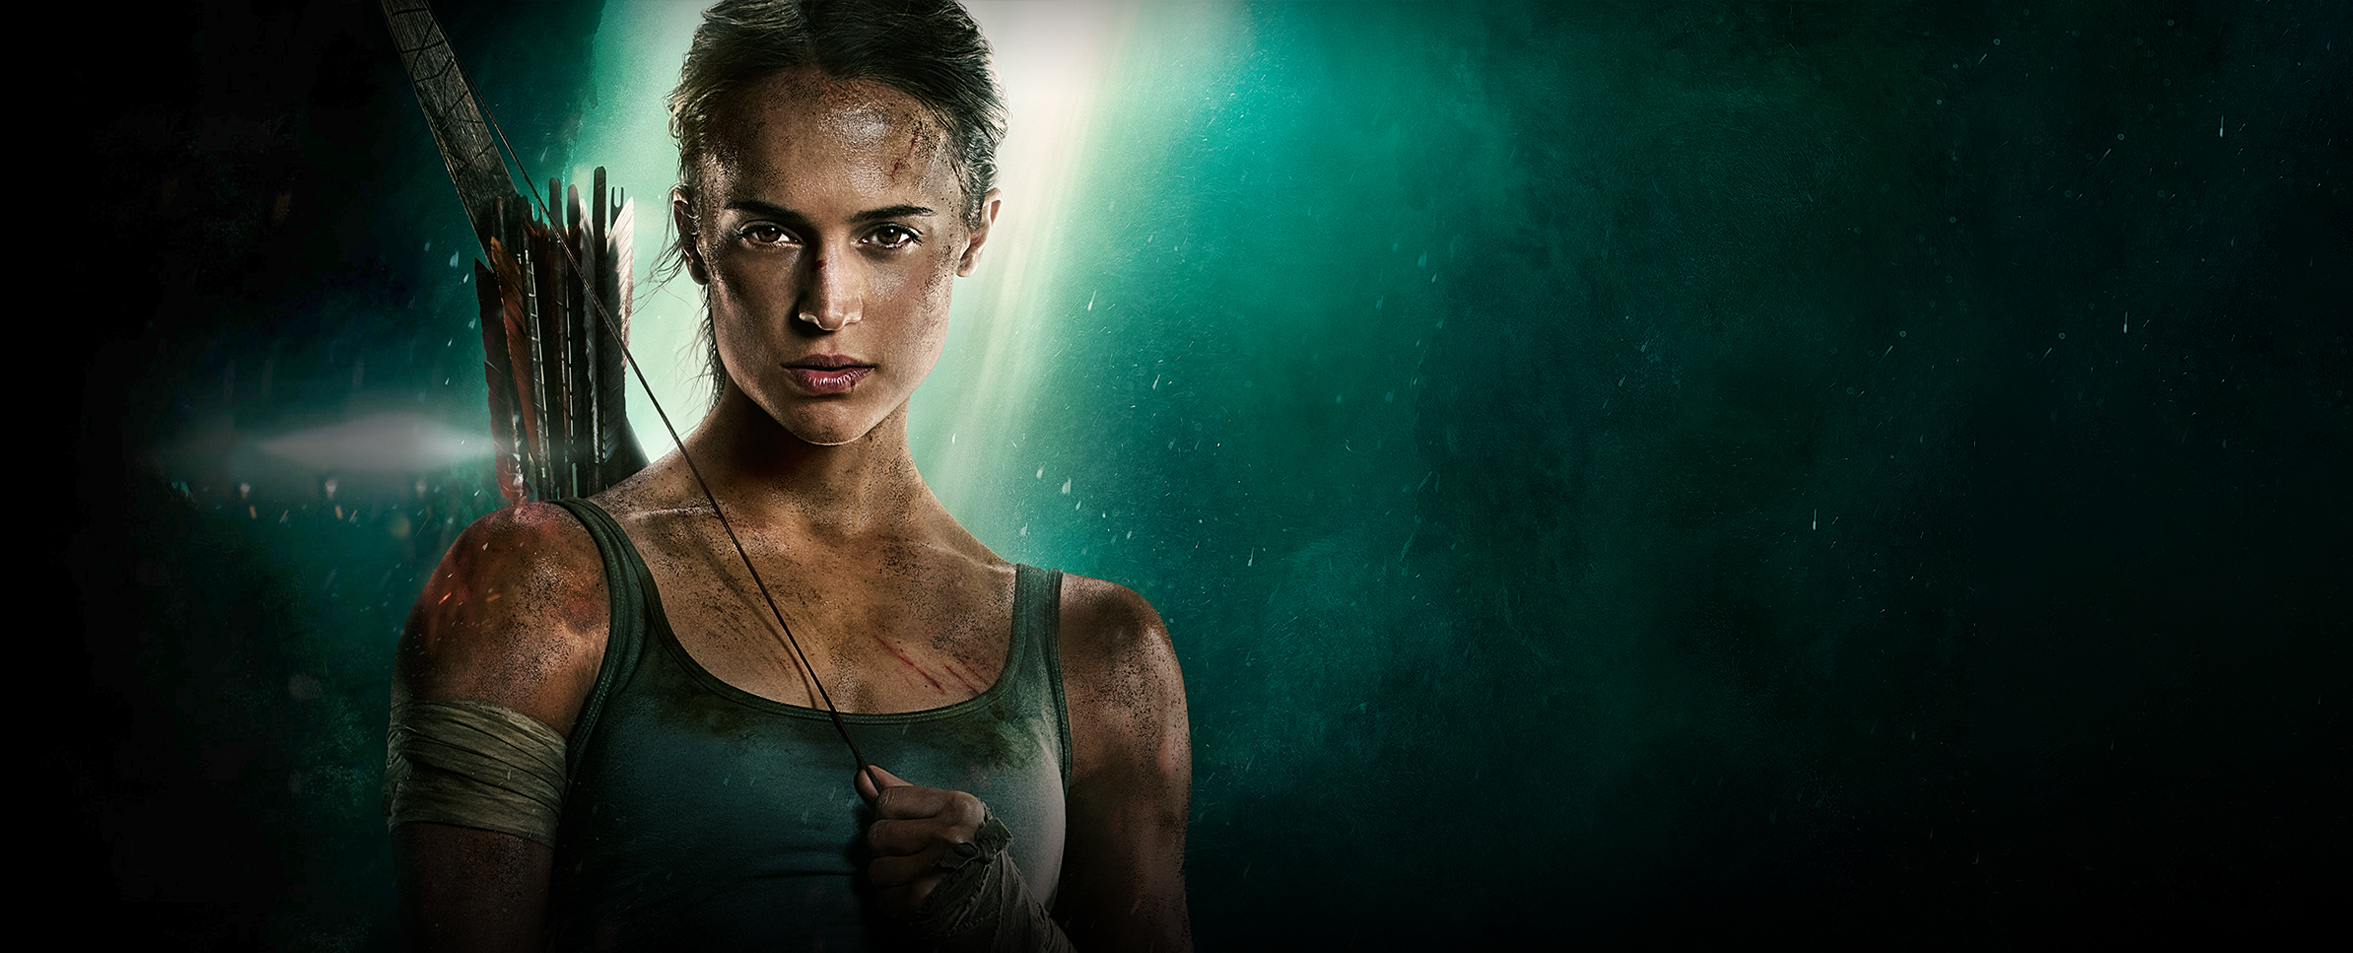 Tomb Raider Movie – Trailer II Live Now!